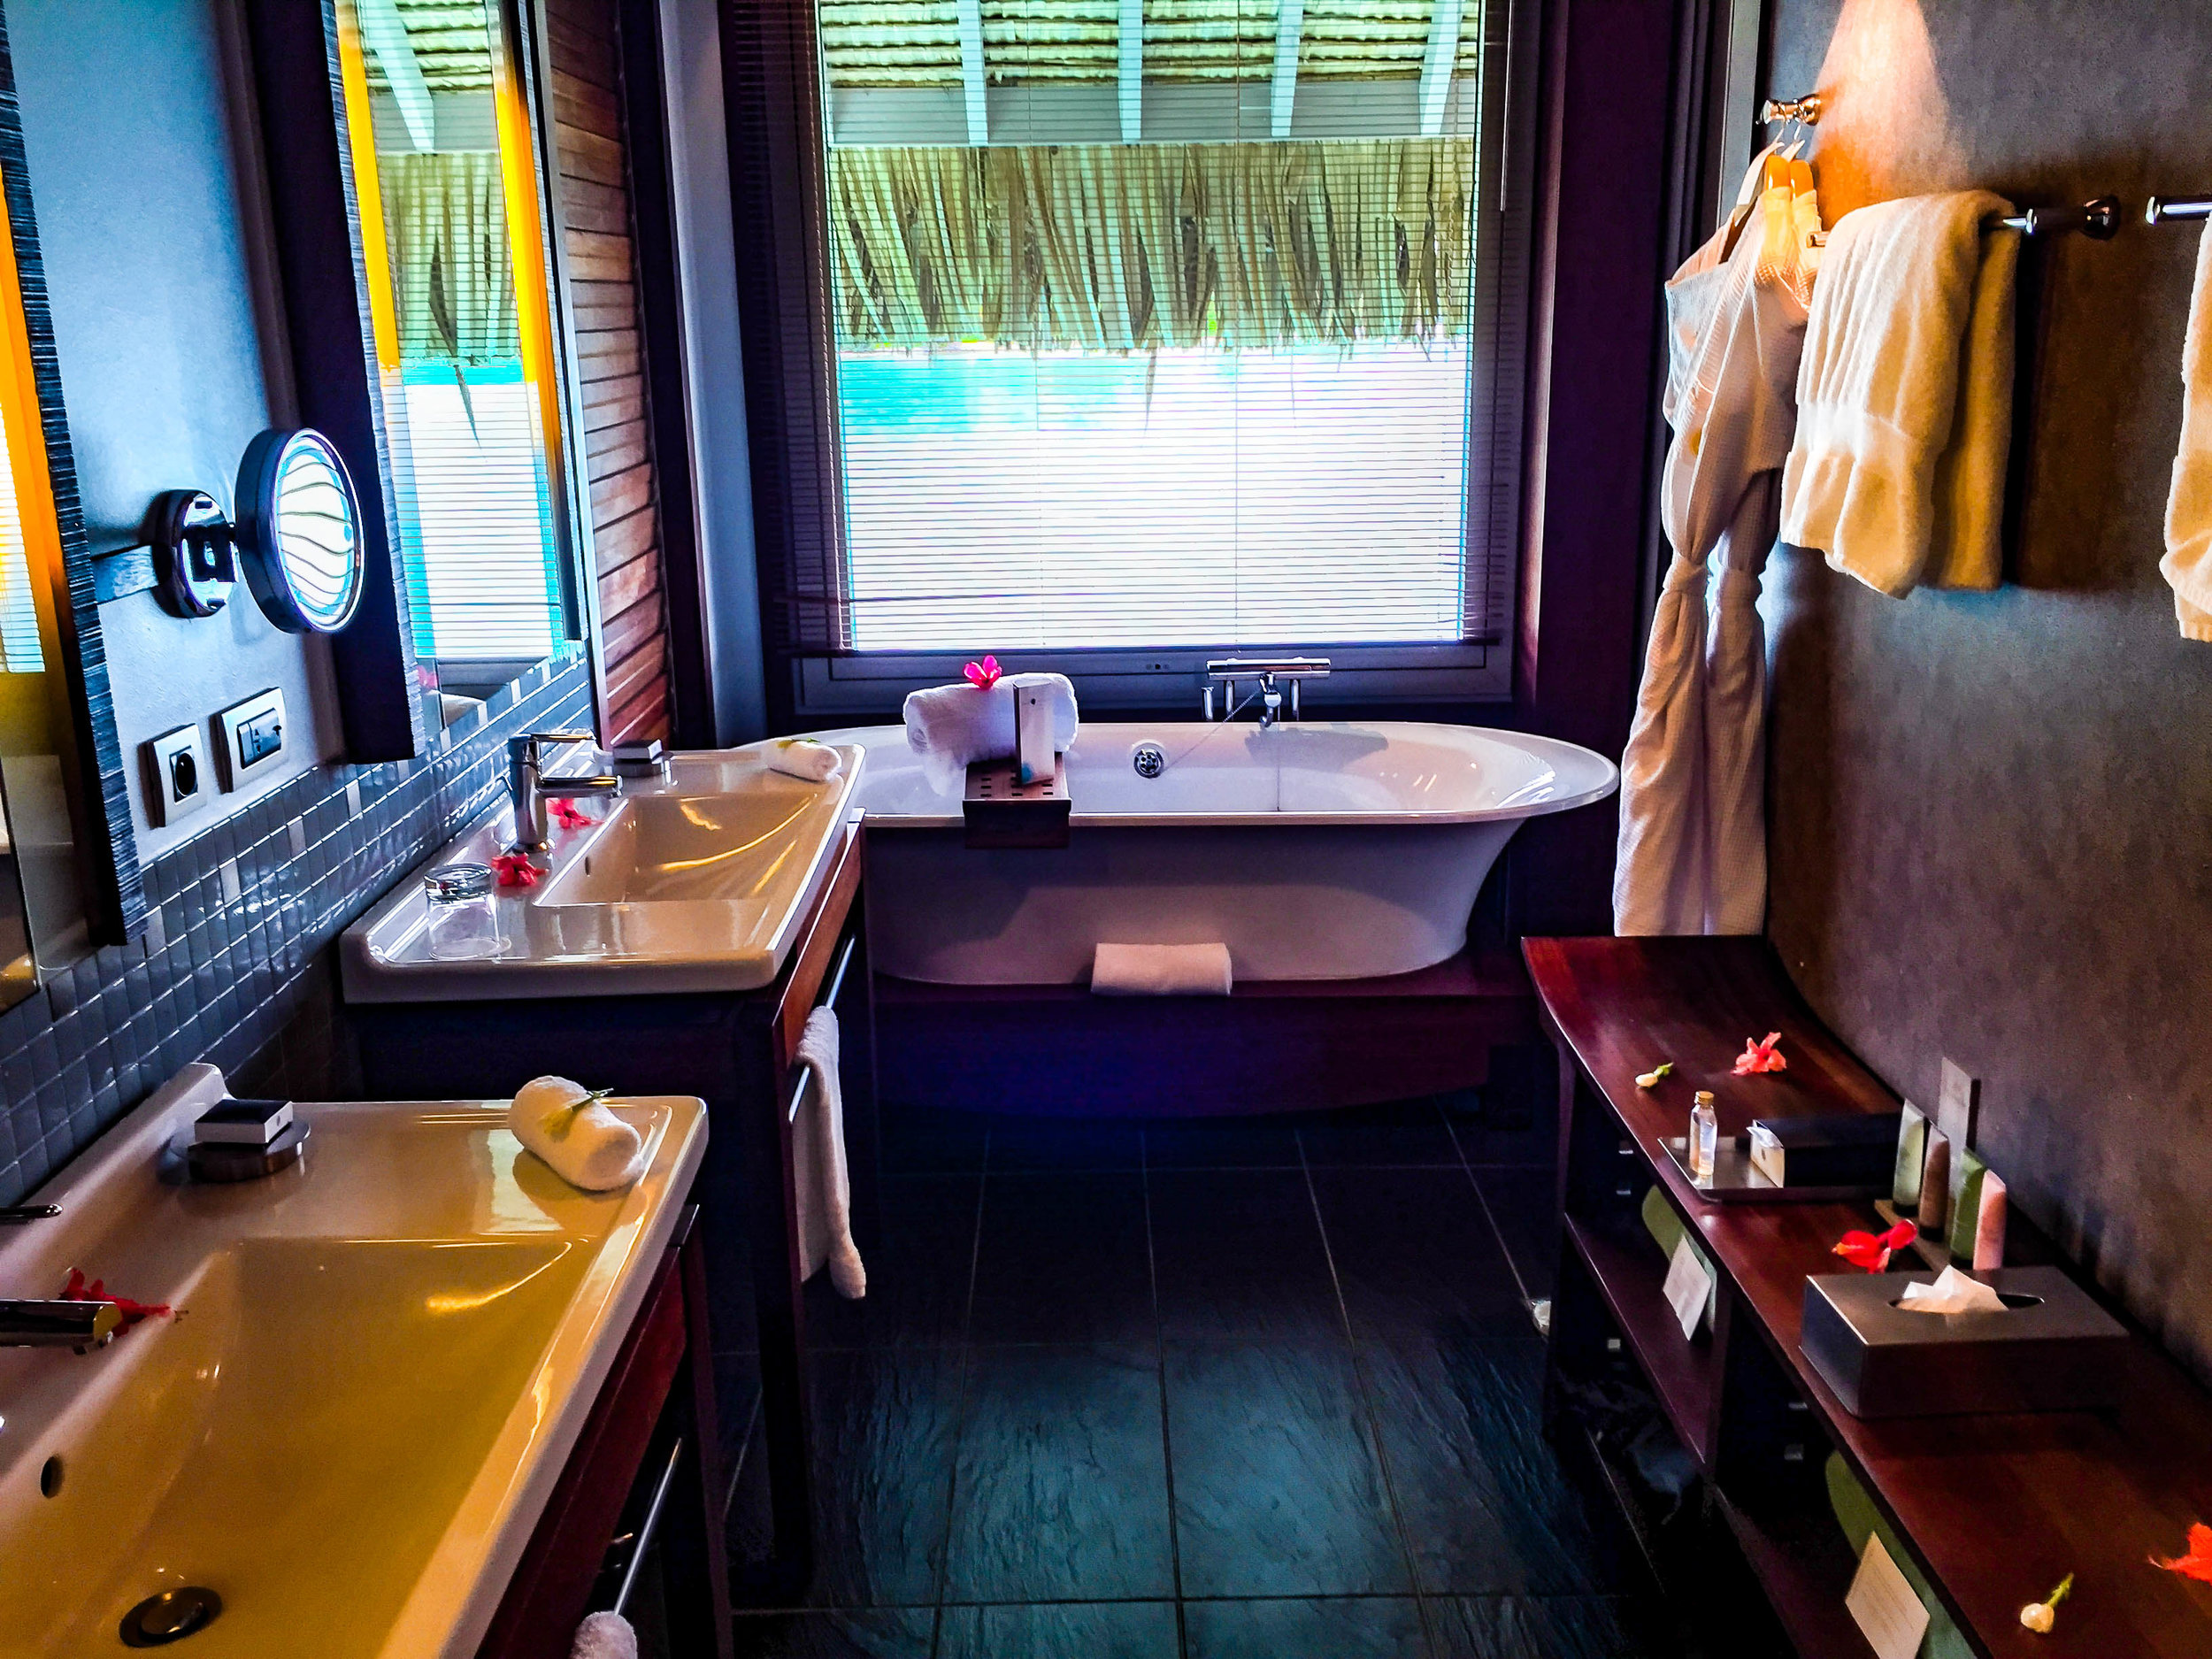 Bora_Bora_InterContinental-bathroom_hotel.jpg